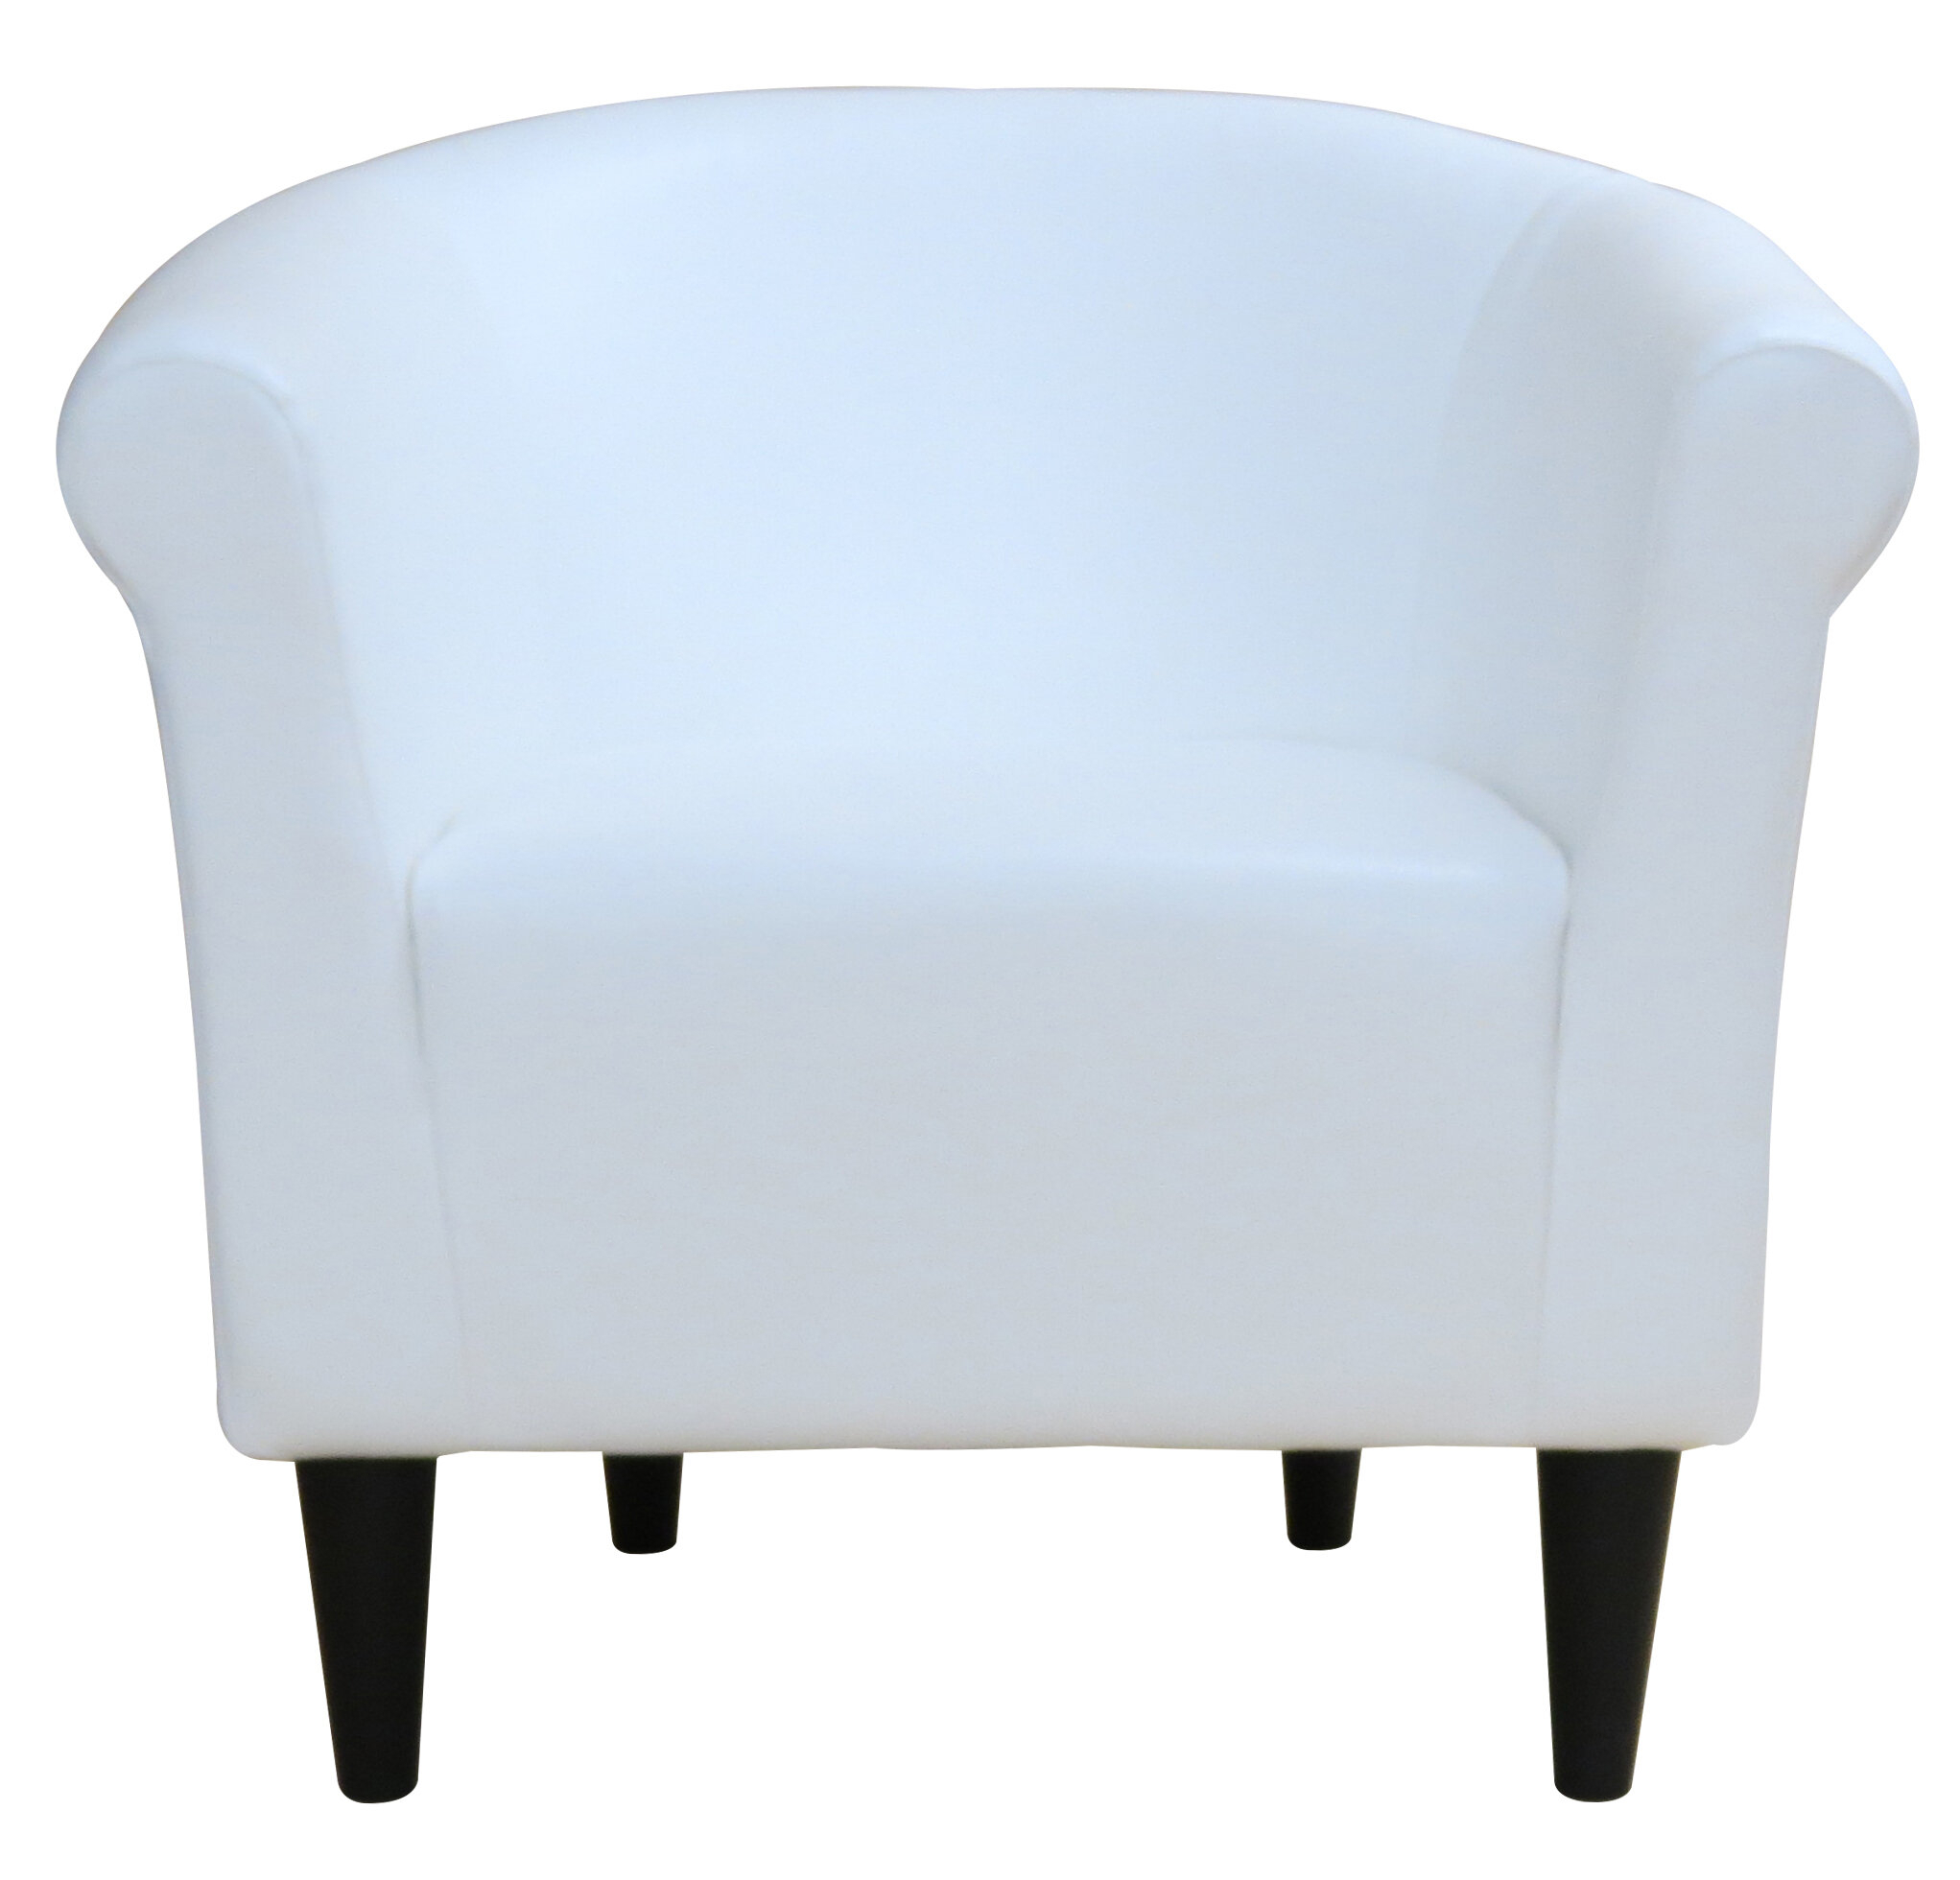 Barrel White Accent Chairs You'Ll Love In 2021 | Wayfair For Gilad Faux Leather Barrel Chairs (View 14 of 15)